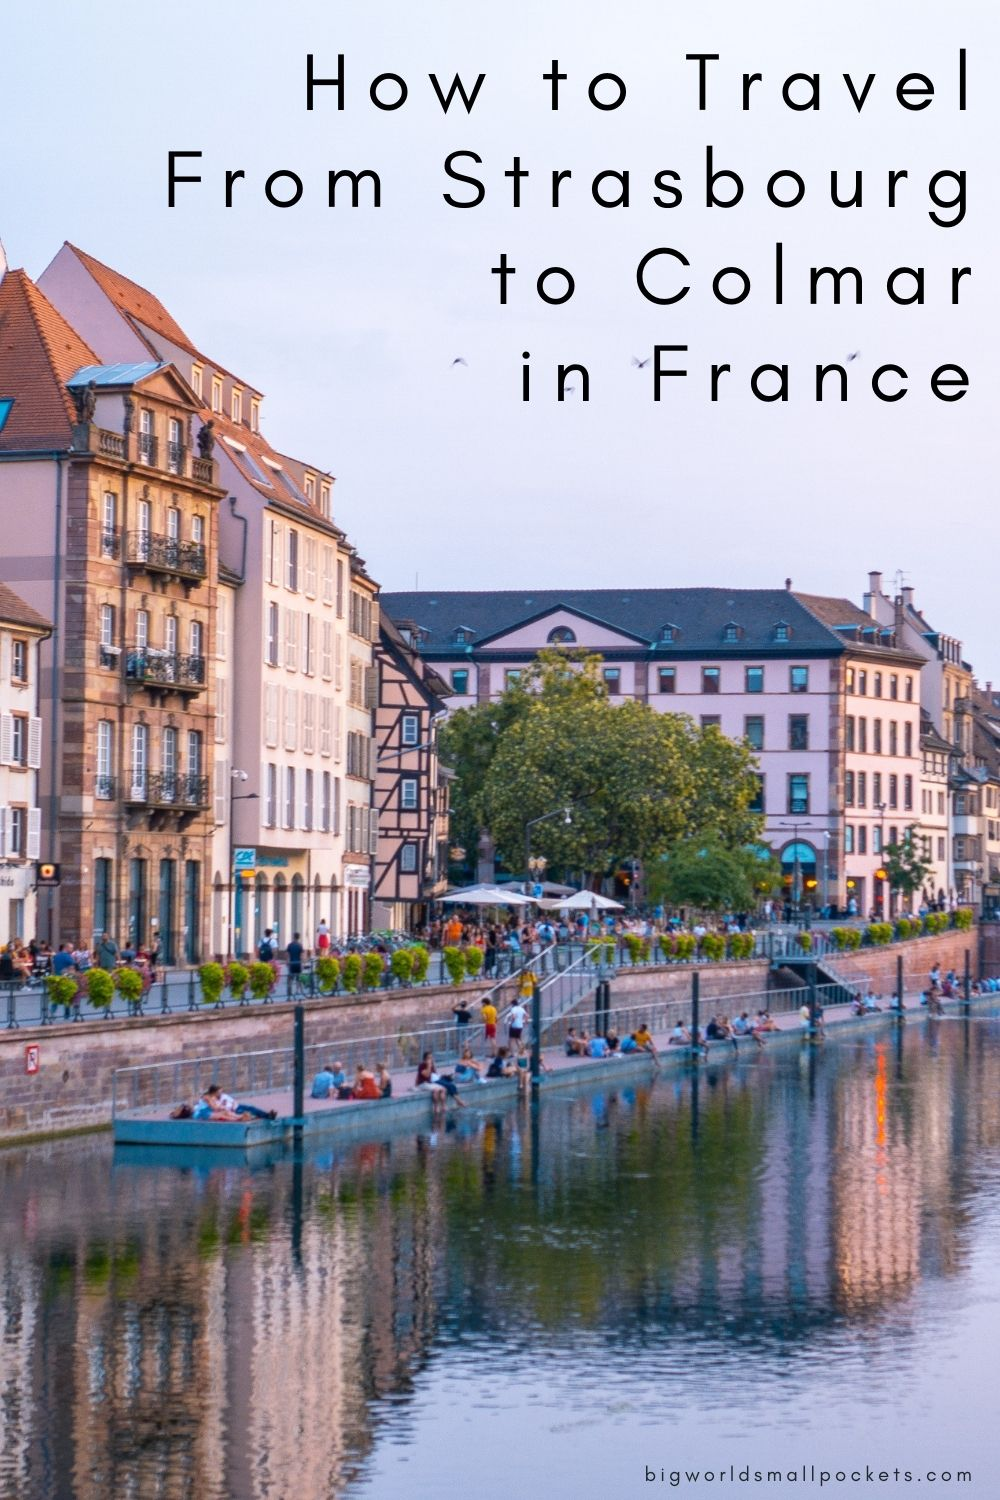 How to Travel From Strasbourg to Colmar in France